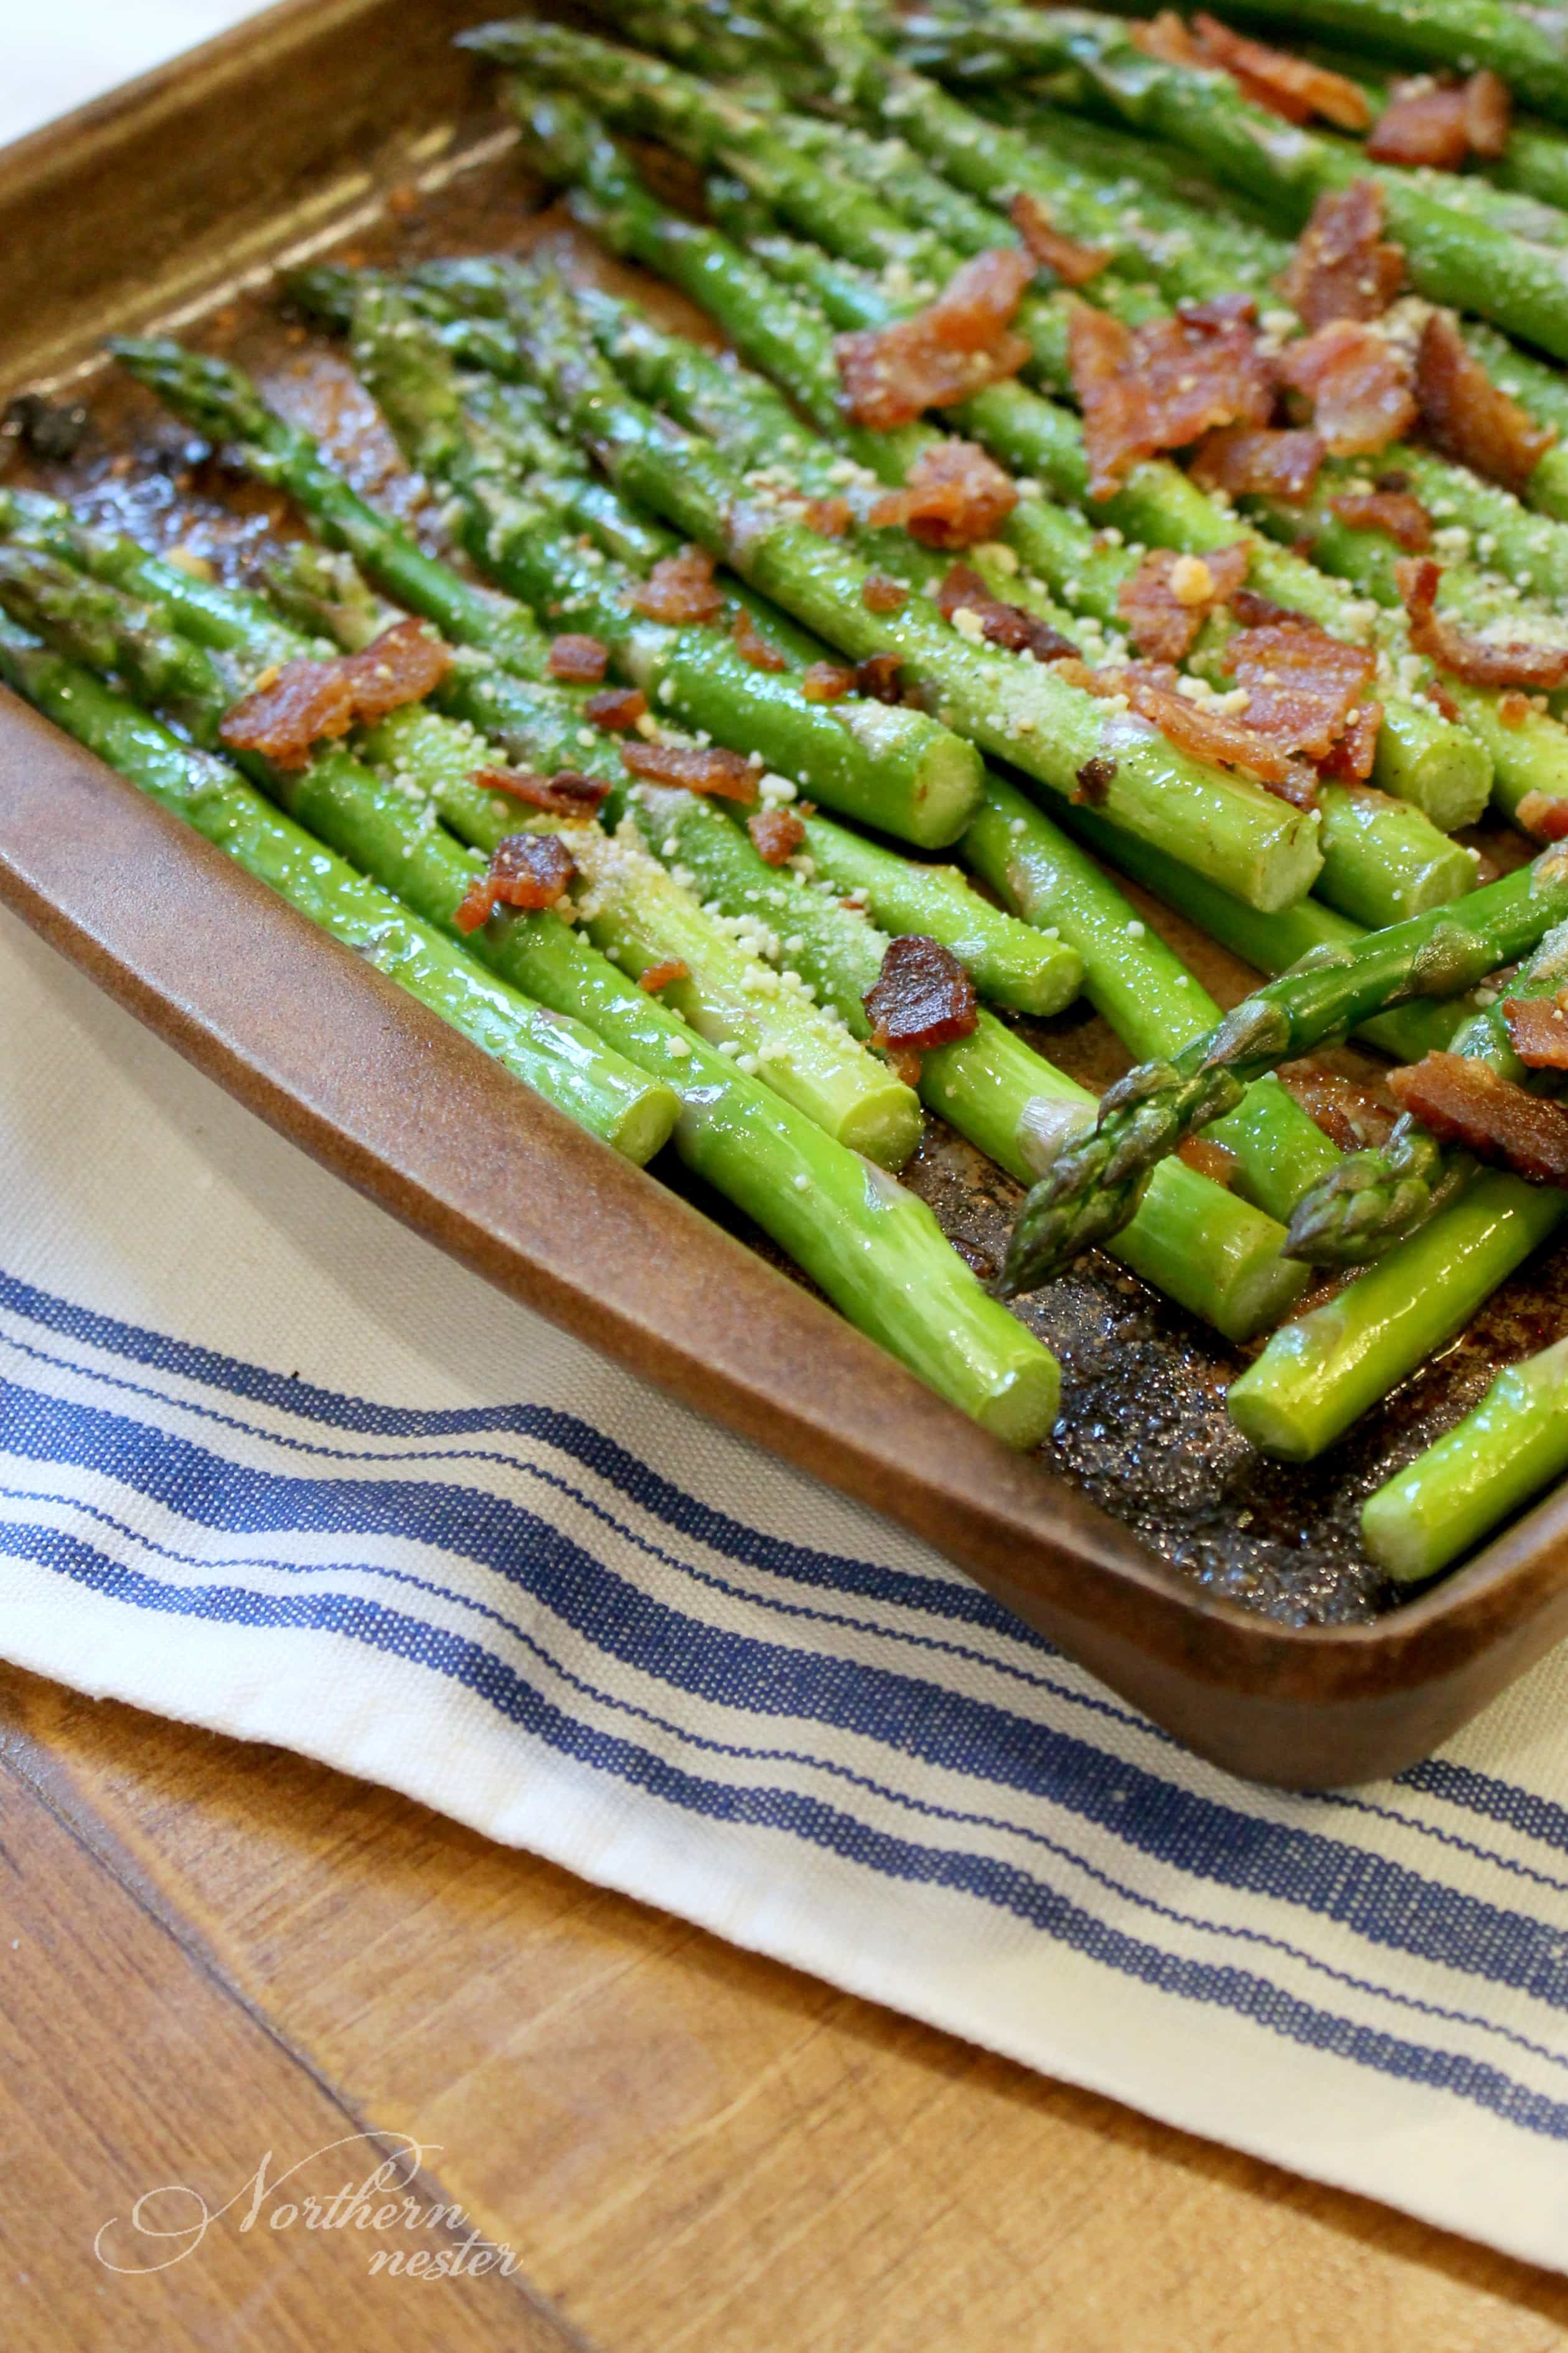 Bacon Parmesan Roasted Asparagus Thm S Northern Nester Watermelon Wallpaper Rainbow Find Free HD for Desktop [freshlhys.tk]